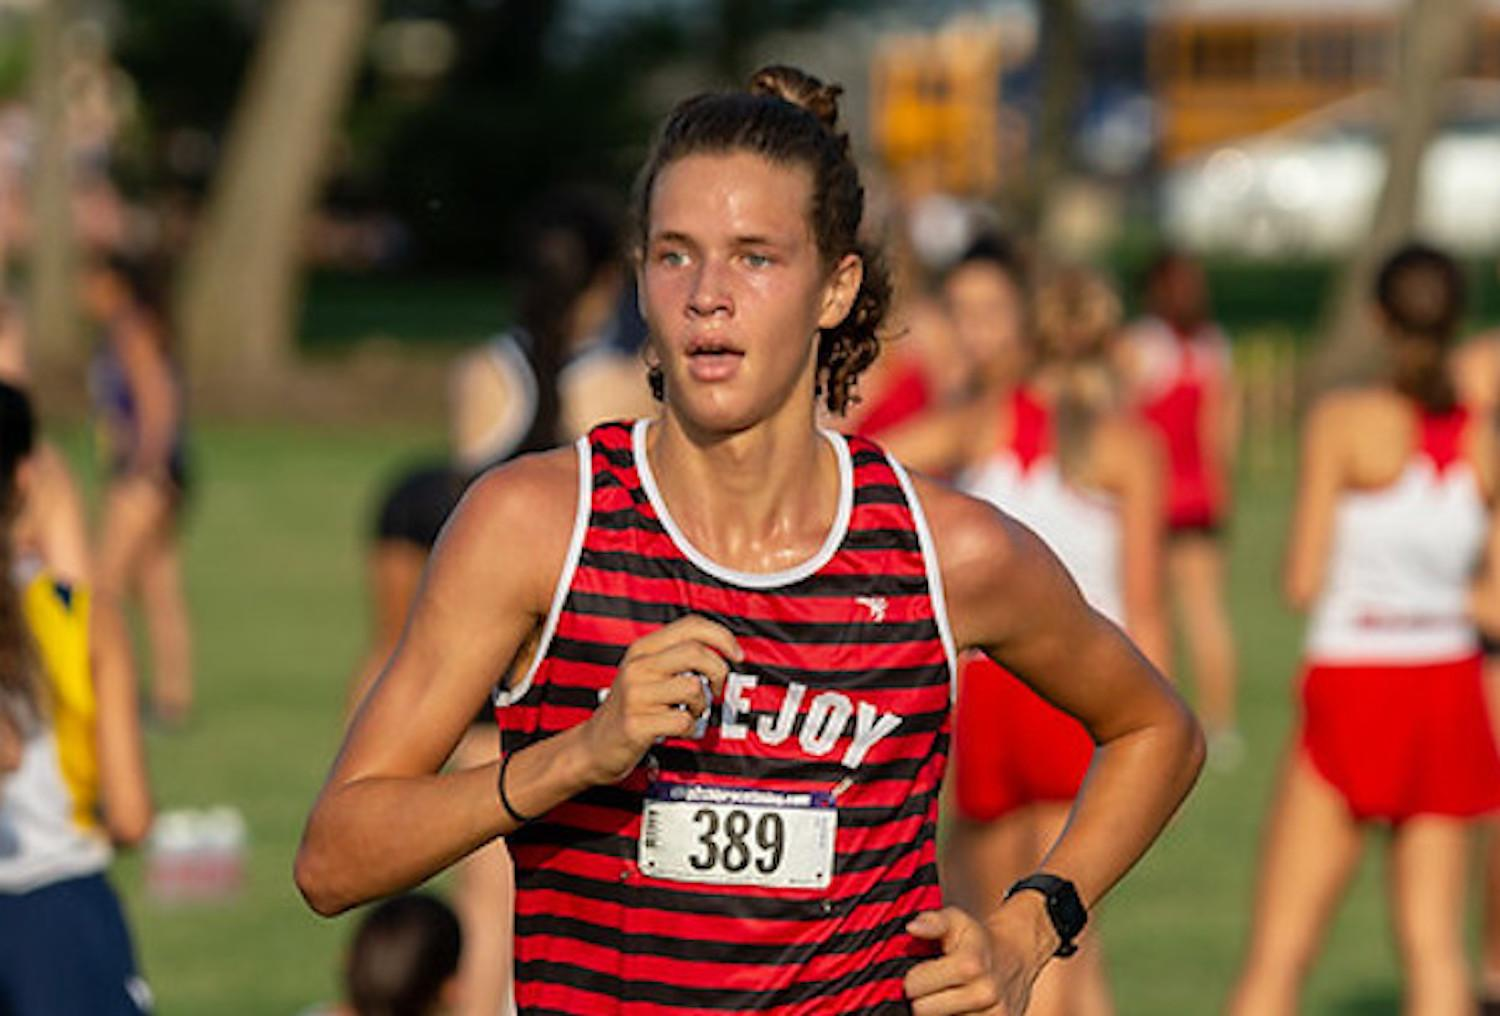 Junior Will Muirhead keeps a steady pace at the Plano ISD Invitational.